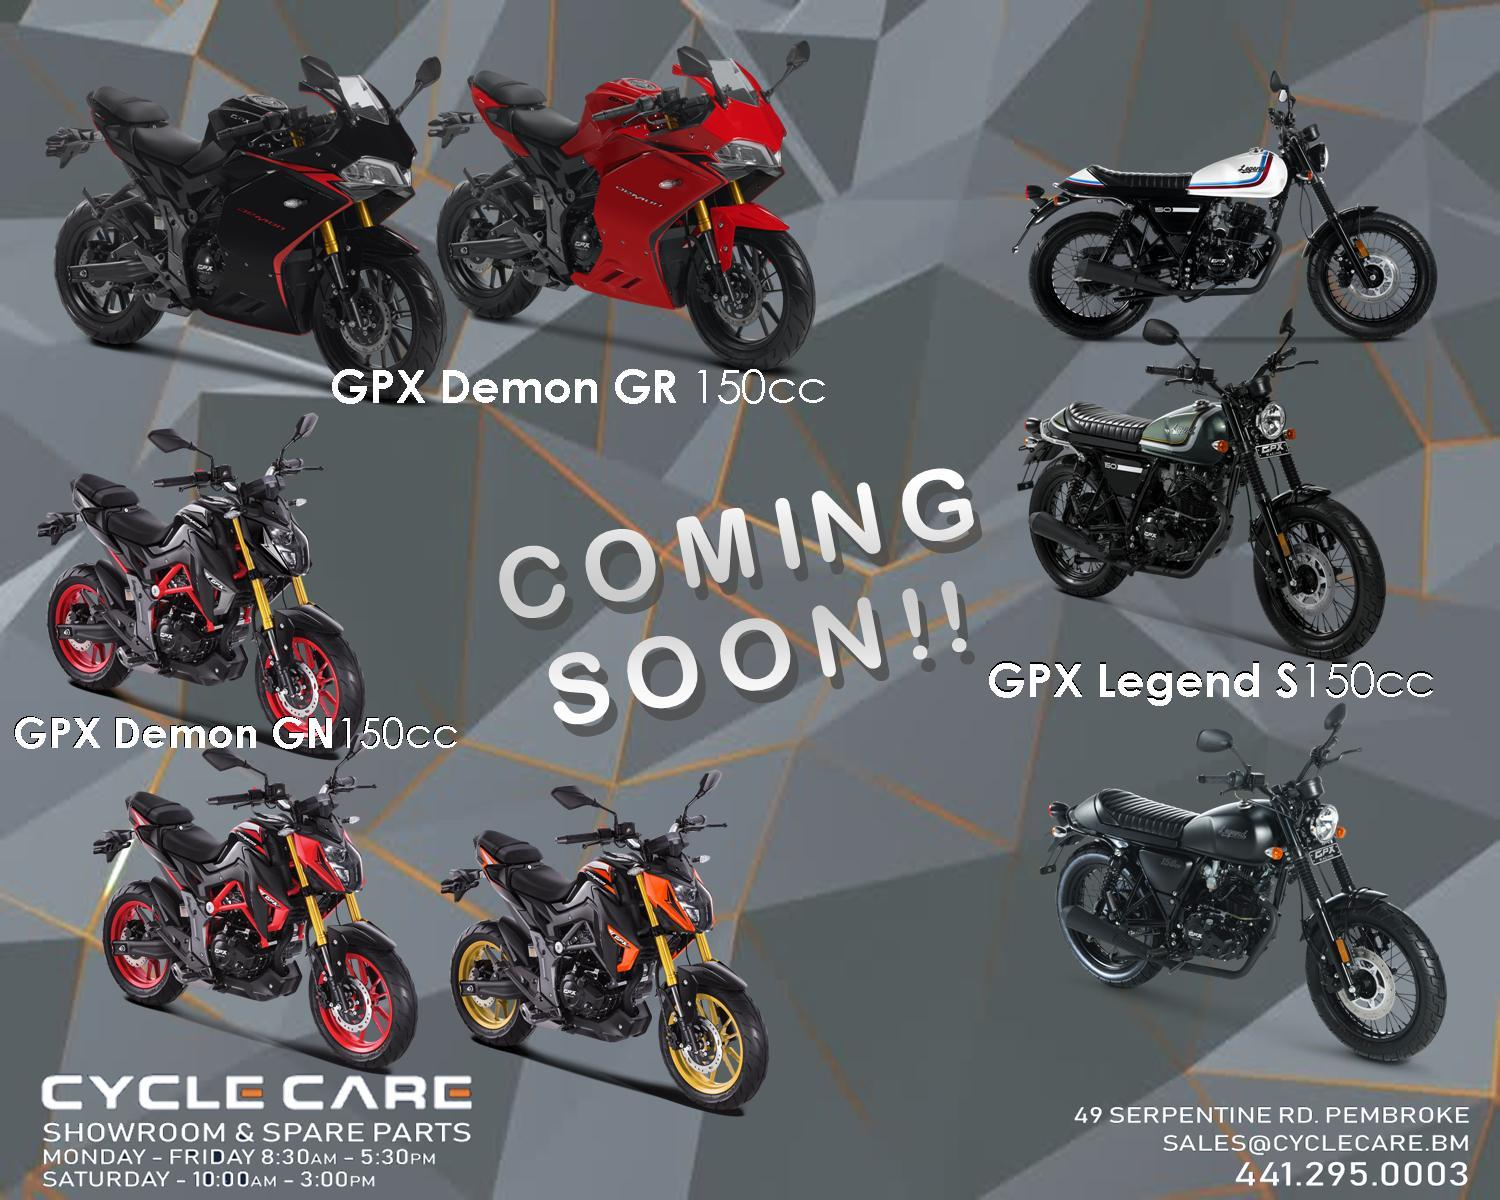 Cycle Care - New Bikes Coming SOON!